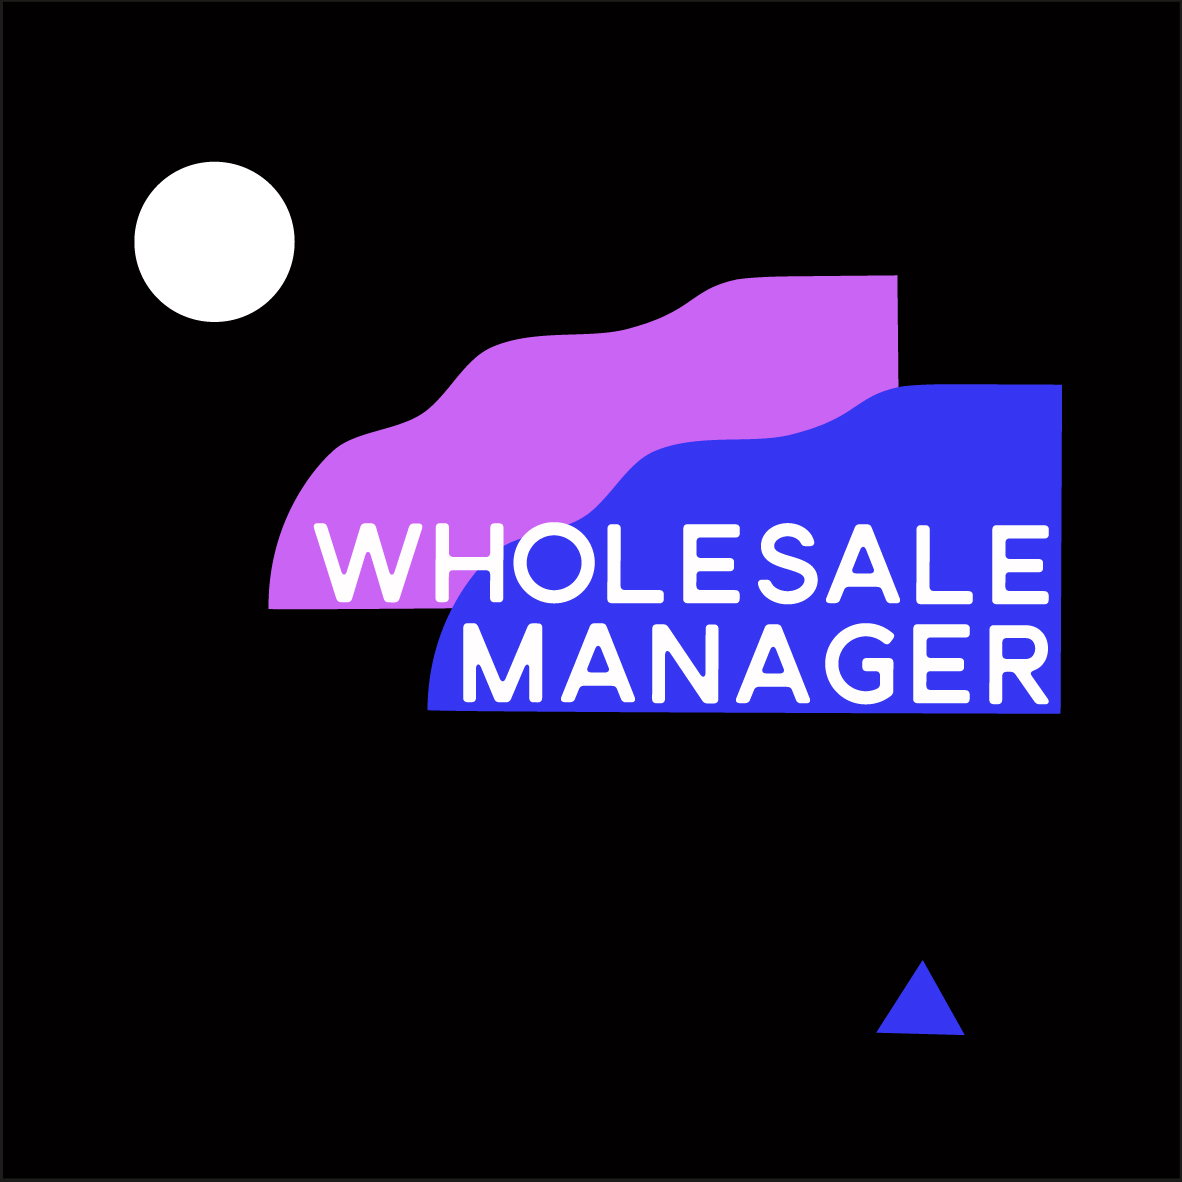 WHOLESALE MANAGER-01.jpg